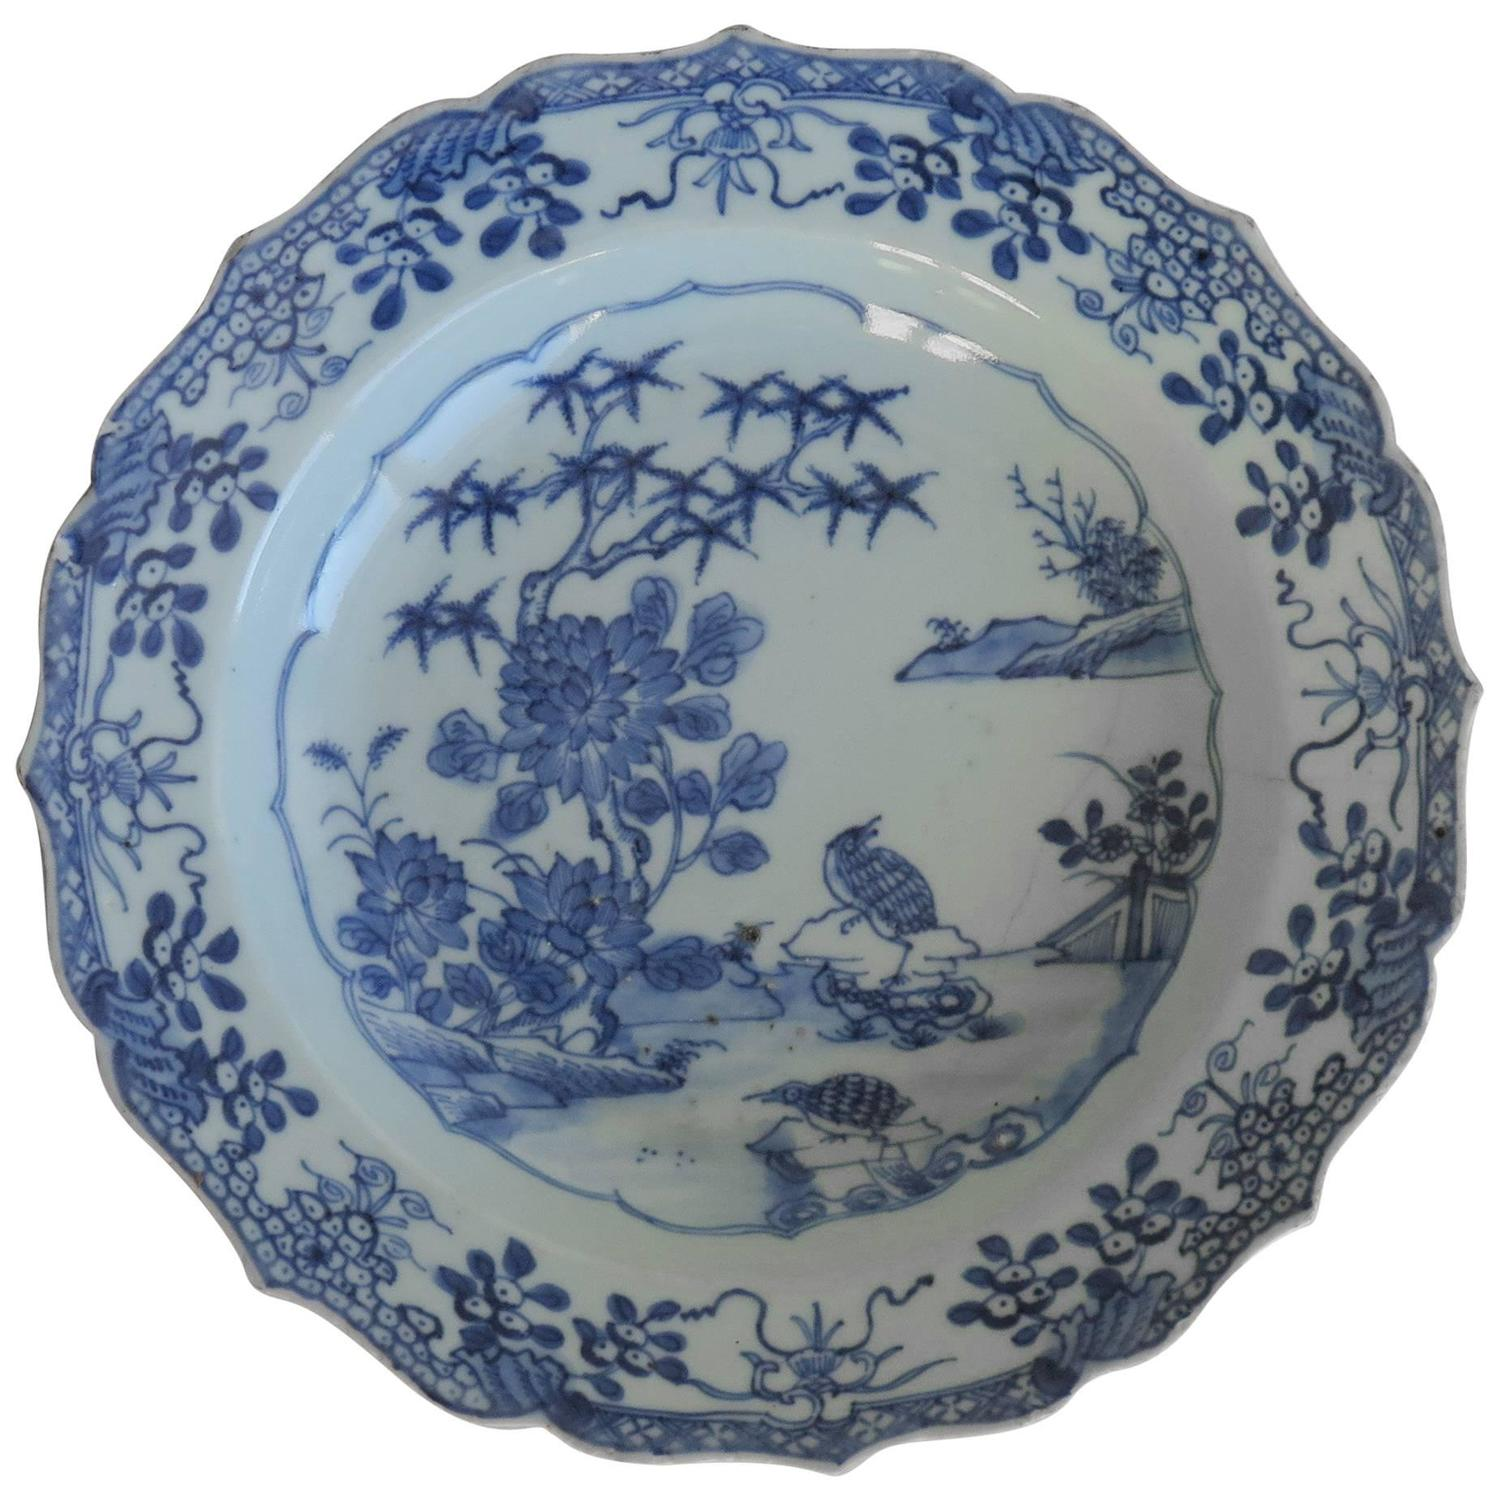 Chinese Porcelain Plate or Bowl Blue and White Woodland Birds